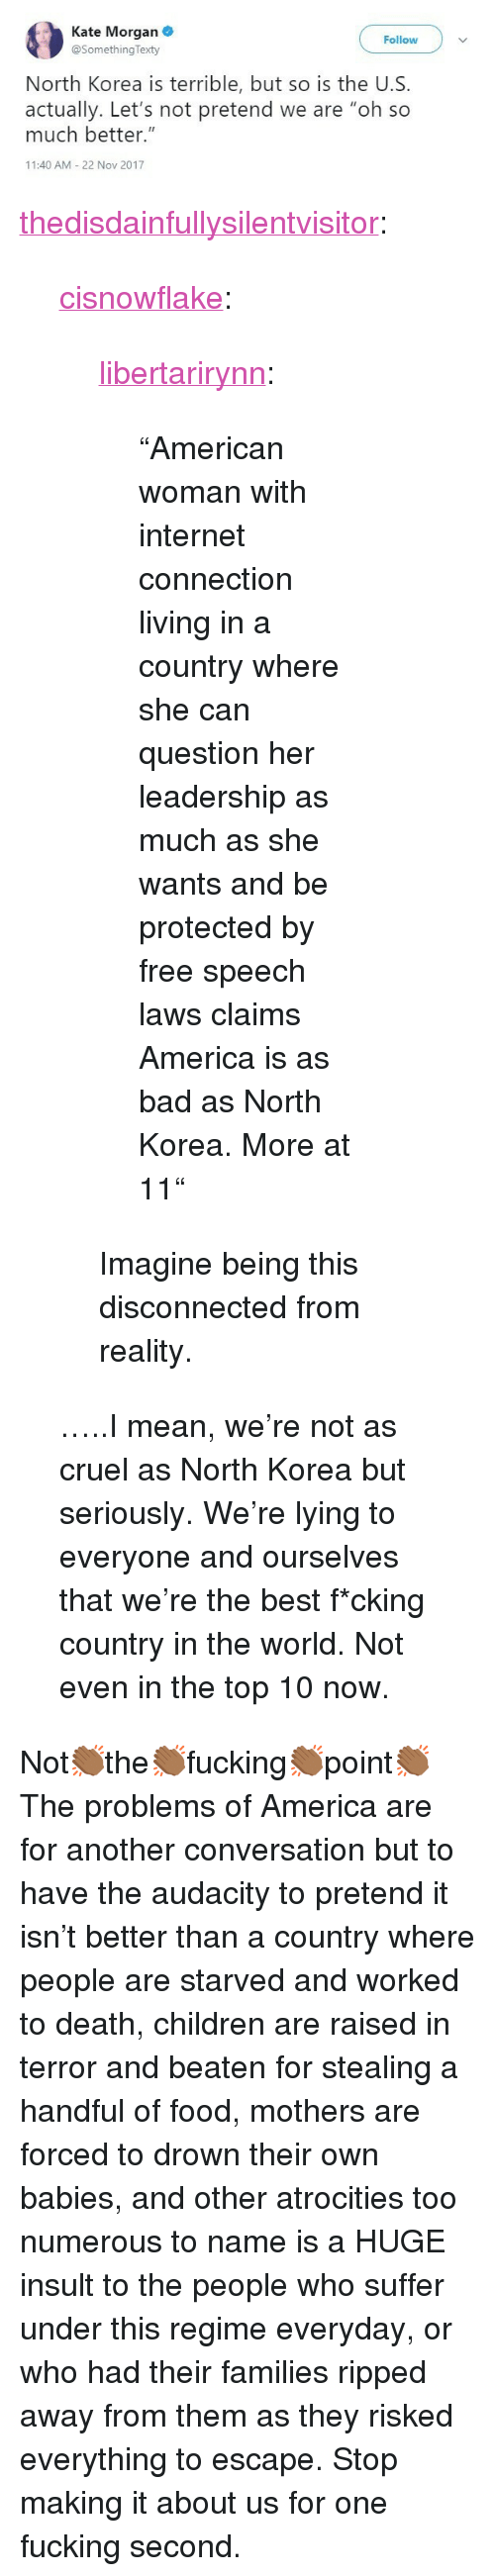 """Atrocities: Kate Morgan  @SomethingTexty  Follow  North Korea is terrible, but so is the U.S.  actually. Let's not pretend we are """"oh so  much better.""""  11:40 AM 22 Nov 2017 <p><a href=""""https://thedisdainfullysilentvisitor.tumblr.com/post/170748009428/cisnowflake-libertarirynn-american-woman"""" class=""""tumblr_blog"""">thedisdainfullysilentvisitor</a>:</p>  <blockquote><p><a href=""""http://cisnowflake.tumblr.com/post/170729196316/libertarirynn-american-woman-with-internet"""" class=""""tumblr_blog"""">cisnowflake</a>:</p> <blockquote> <p><a href=""""https://libertarirynn.tumblr.com/post/170721465409/american-woman-with-internet-connection-living-in"""" class=""""tumblr_blog"""">libertarirynn</a>:</p> <blockquote><p>""""American woman with internet connection living in a country where she can question her leadership as much as she wants and be protected by free speech laws claims America is as bad as North Korea. More at 11""""</p></blockquote>  <p>Imagine being this disconnected from reality.</p> </blockquote> <p>…..I mean, we're not as cruel as North Korea but seriously. We're lying to everyone and ourselves that we're the best f*cking country in the world. Not even in the top 10 now.</p></blockquote>  <p>Not👏🏾the👏🏾fucking👏🏾point👏🏾</p><p>The problems of America are for another conversation but to have the audacity to pretend it isn't better than a country where people are starved and worked to death, children are raised in terror and beaten for stealing a handful of food, mothers are forced to drown their own babies, and other atrocities too numerous to name is a HUGE insult to the people who suffer under this regime everyday, or who had their families ripped away from them as they risked everything to escape. Stop making it about us for one fucking second.</p>"""